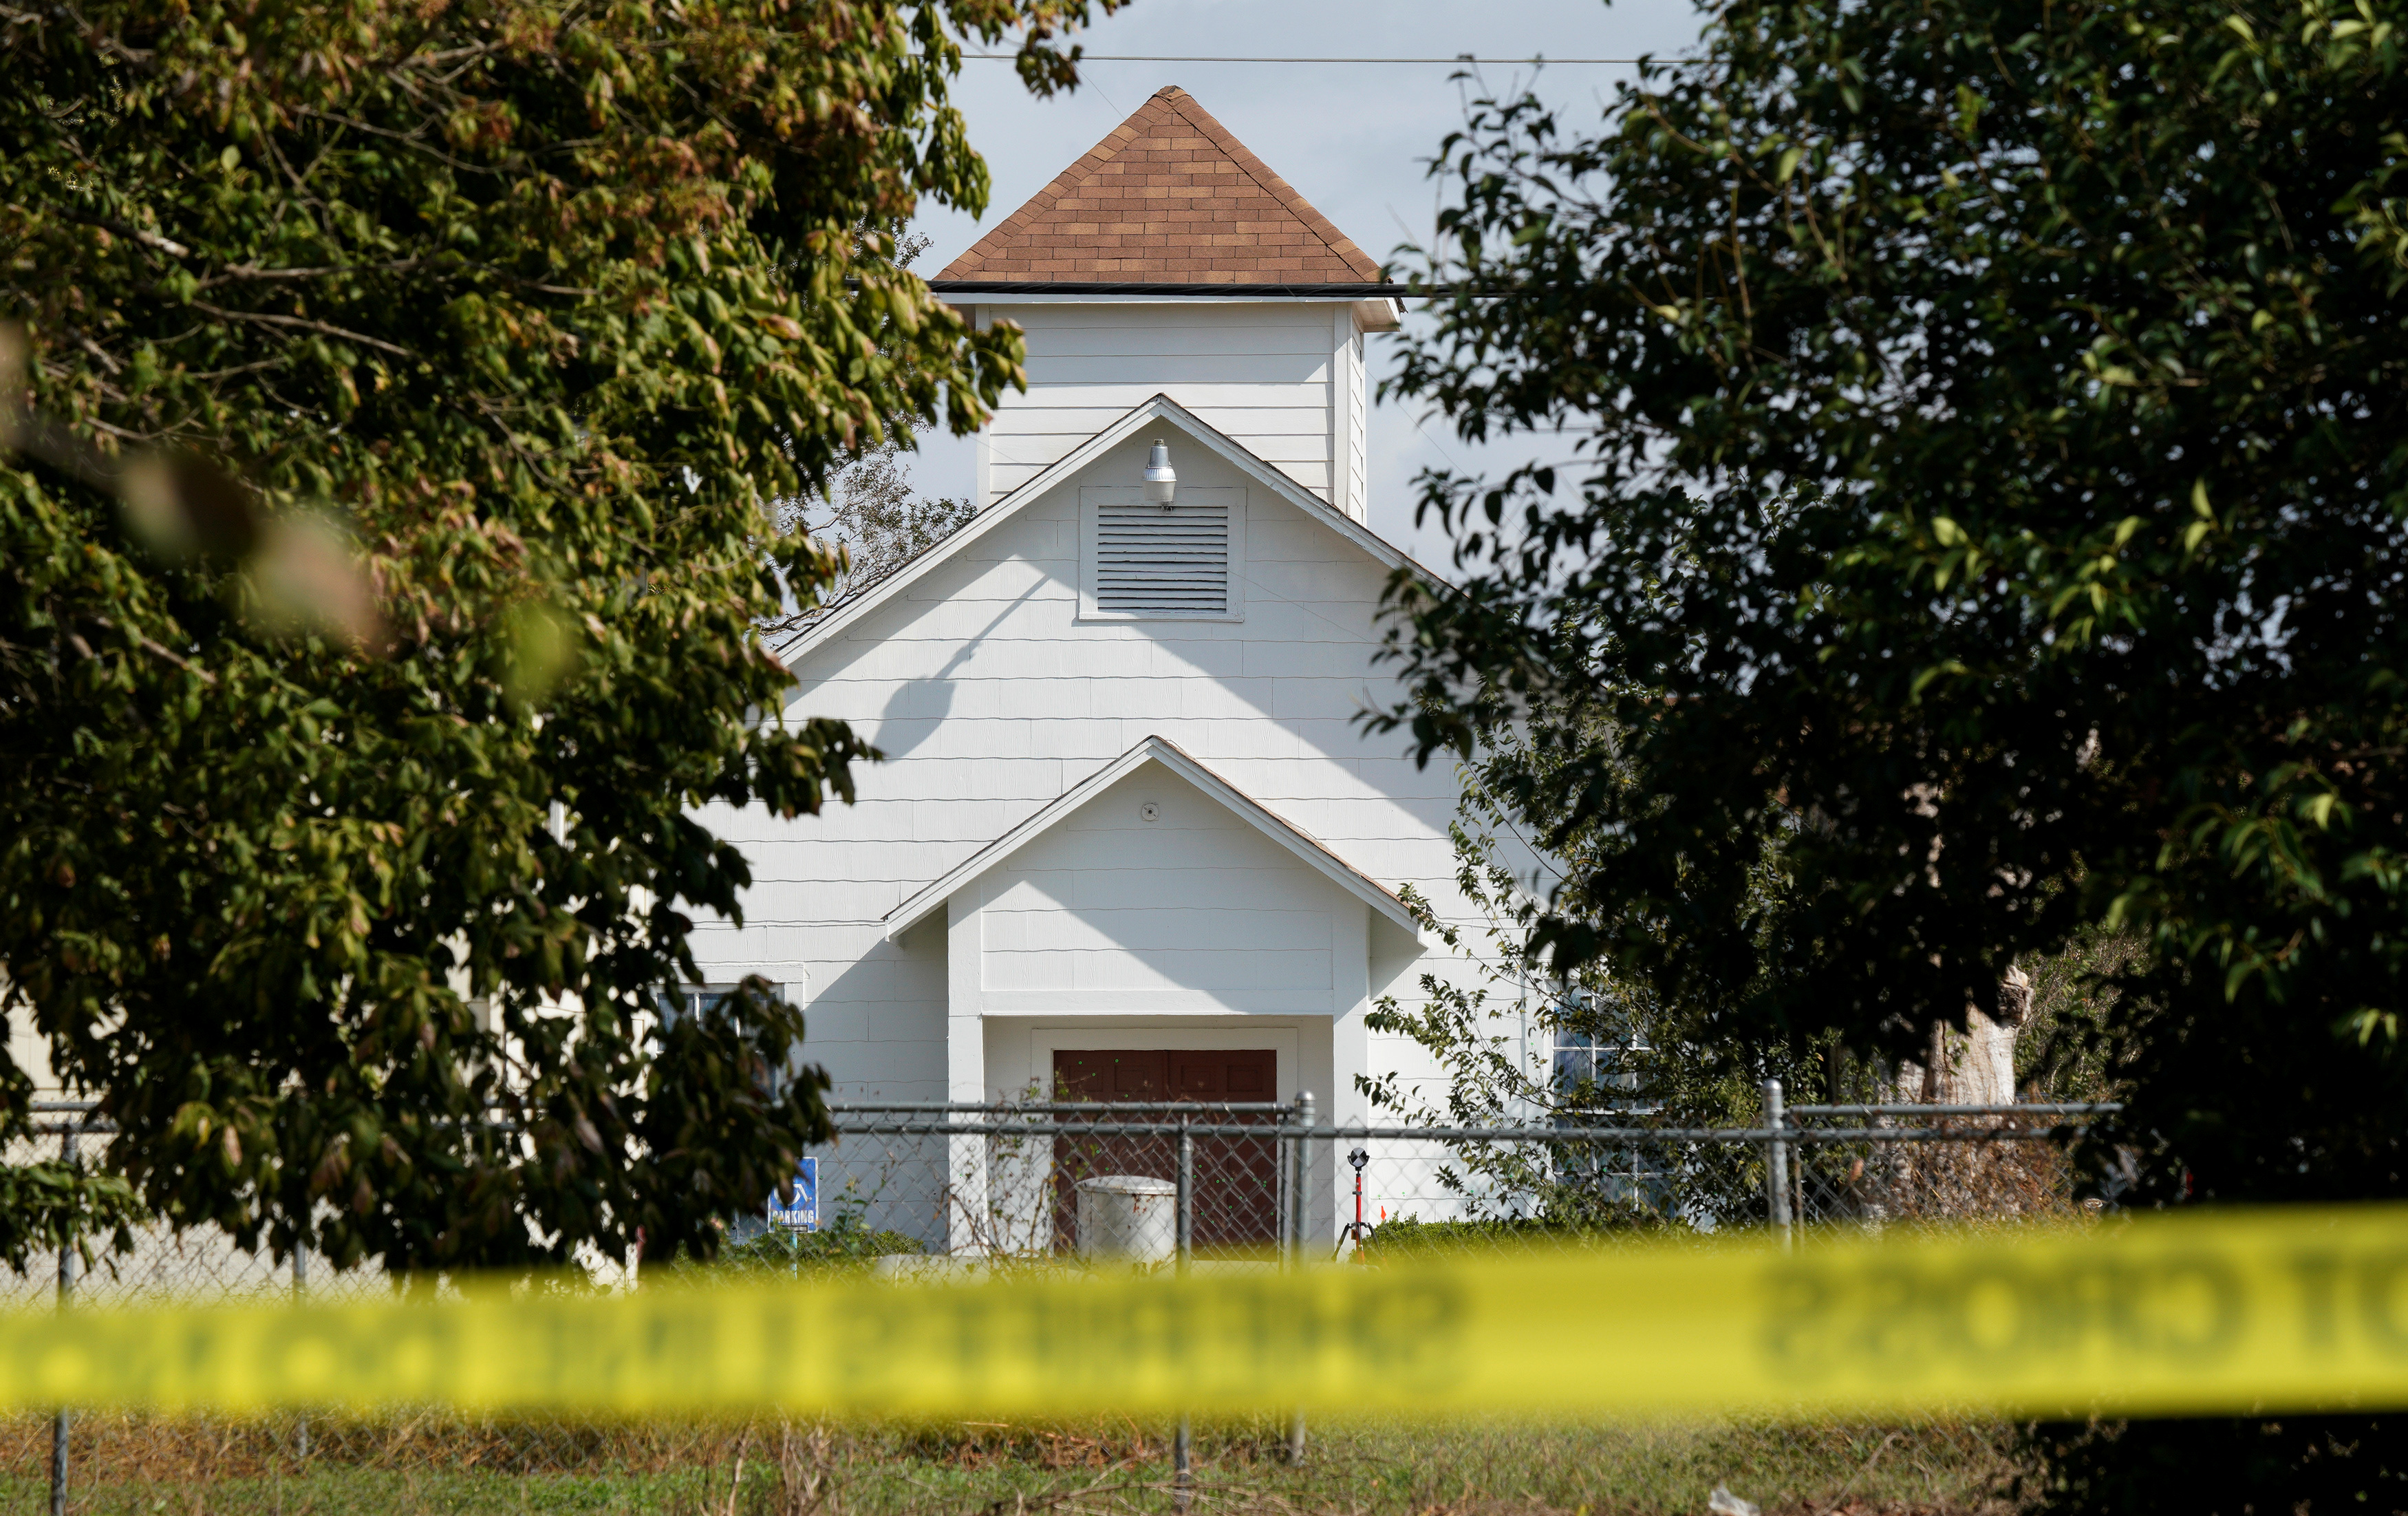 Texas Church Shooting Video Shows a Methodical Attack, Official Says